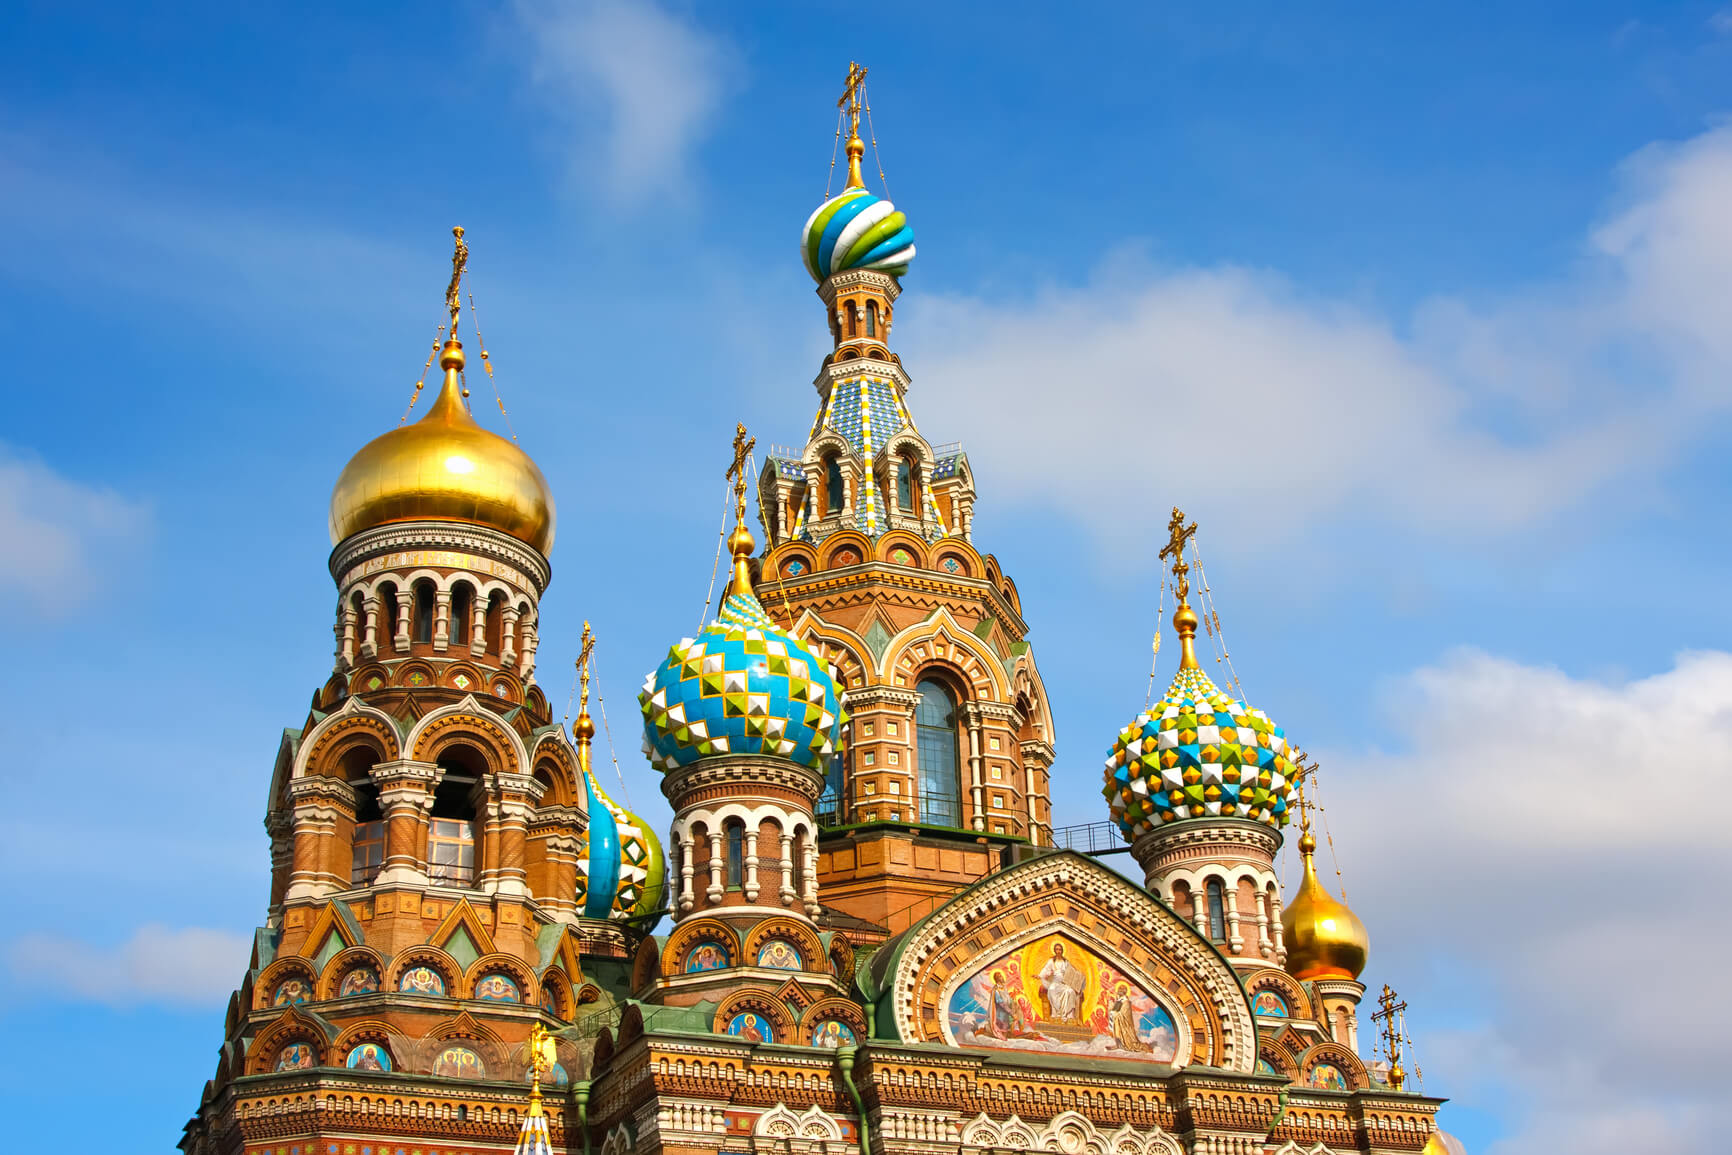 Non-stop from Bucharest, Romania to St. Petersburg, Russia for only €22 roundtrip (Wizz members price) (Dec-Feb dates)